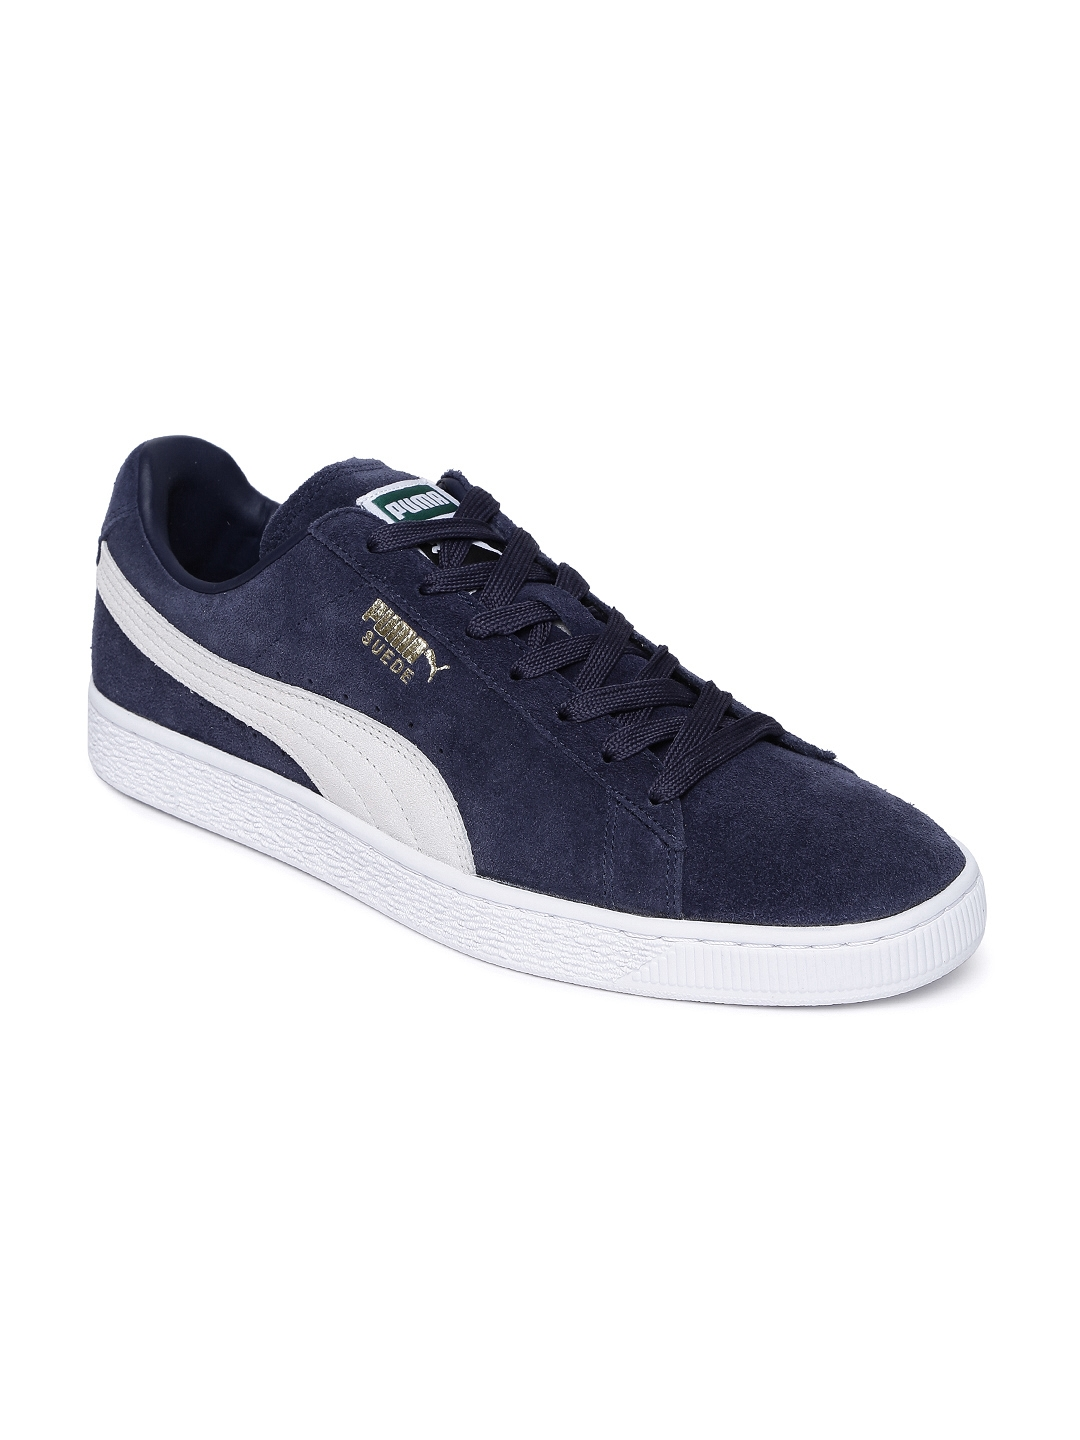 7ef626c1f8a0 Buy Puma Men Navy Blue Suede Classic Sneakers - Casual Shoes for Men ...